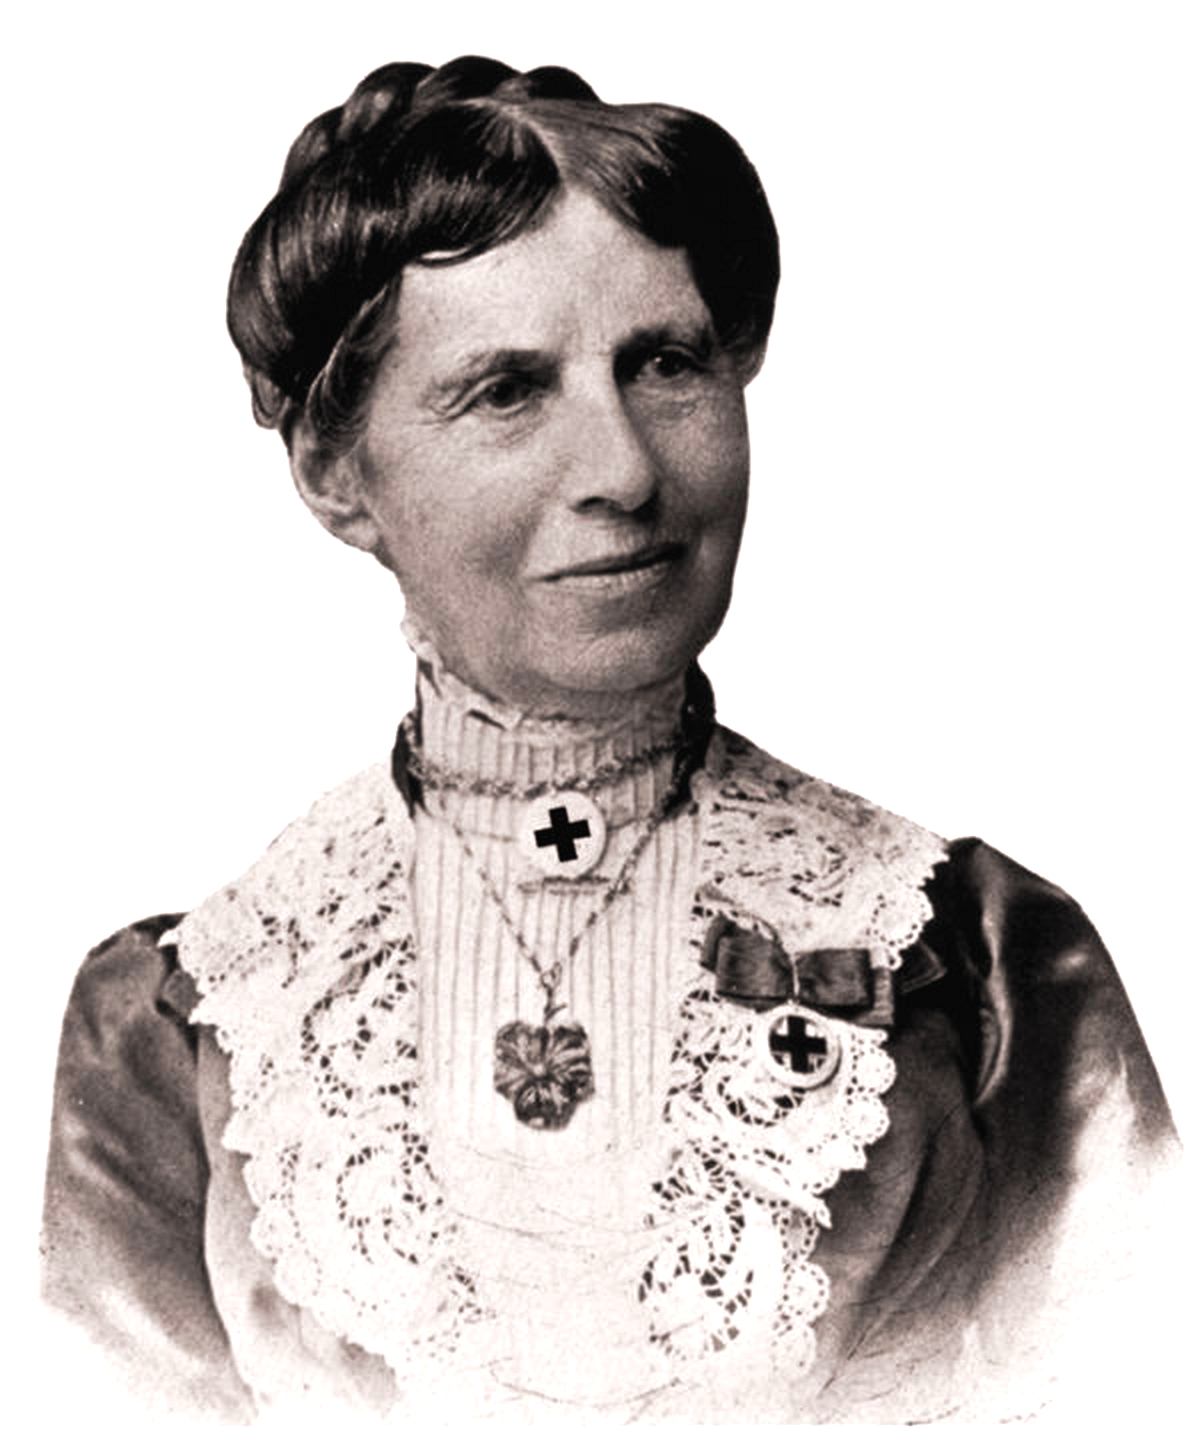 Clara Barton was an American humanitarian and a nurse, accredited with the formation of American Red Cross. She was born on December 25, 1821 in Massachusetts,  United States. She developed an interest in medicine at the very young  age of 11 while she was nursing her ailing brother. She played an  important role during the American Civil War  by helping hundreds of wounded soldiers.